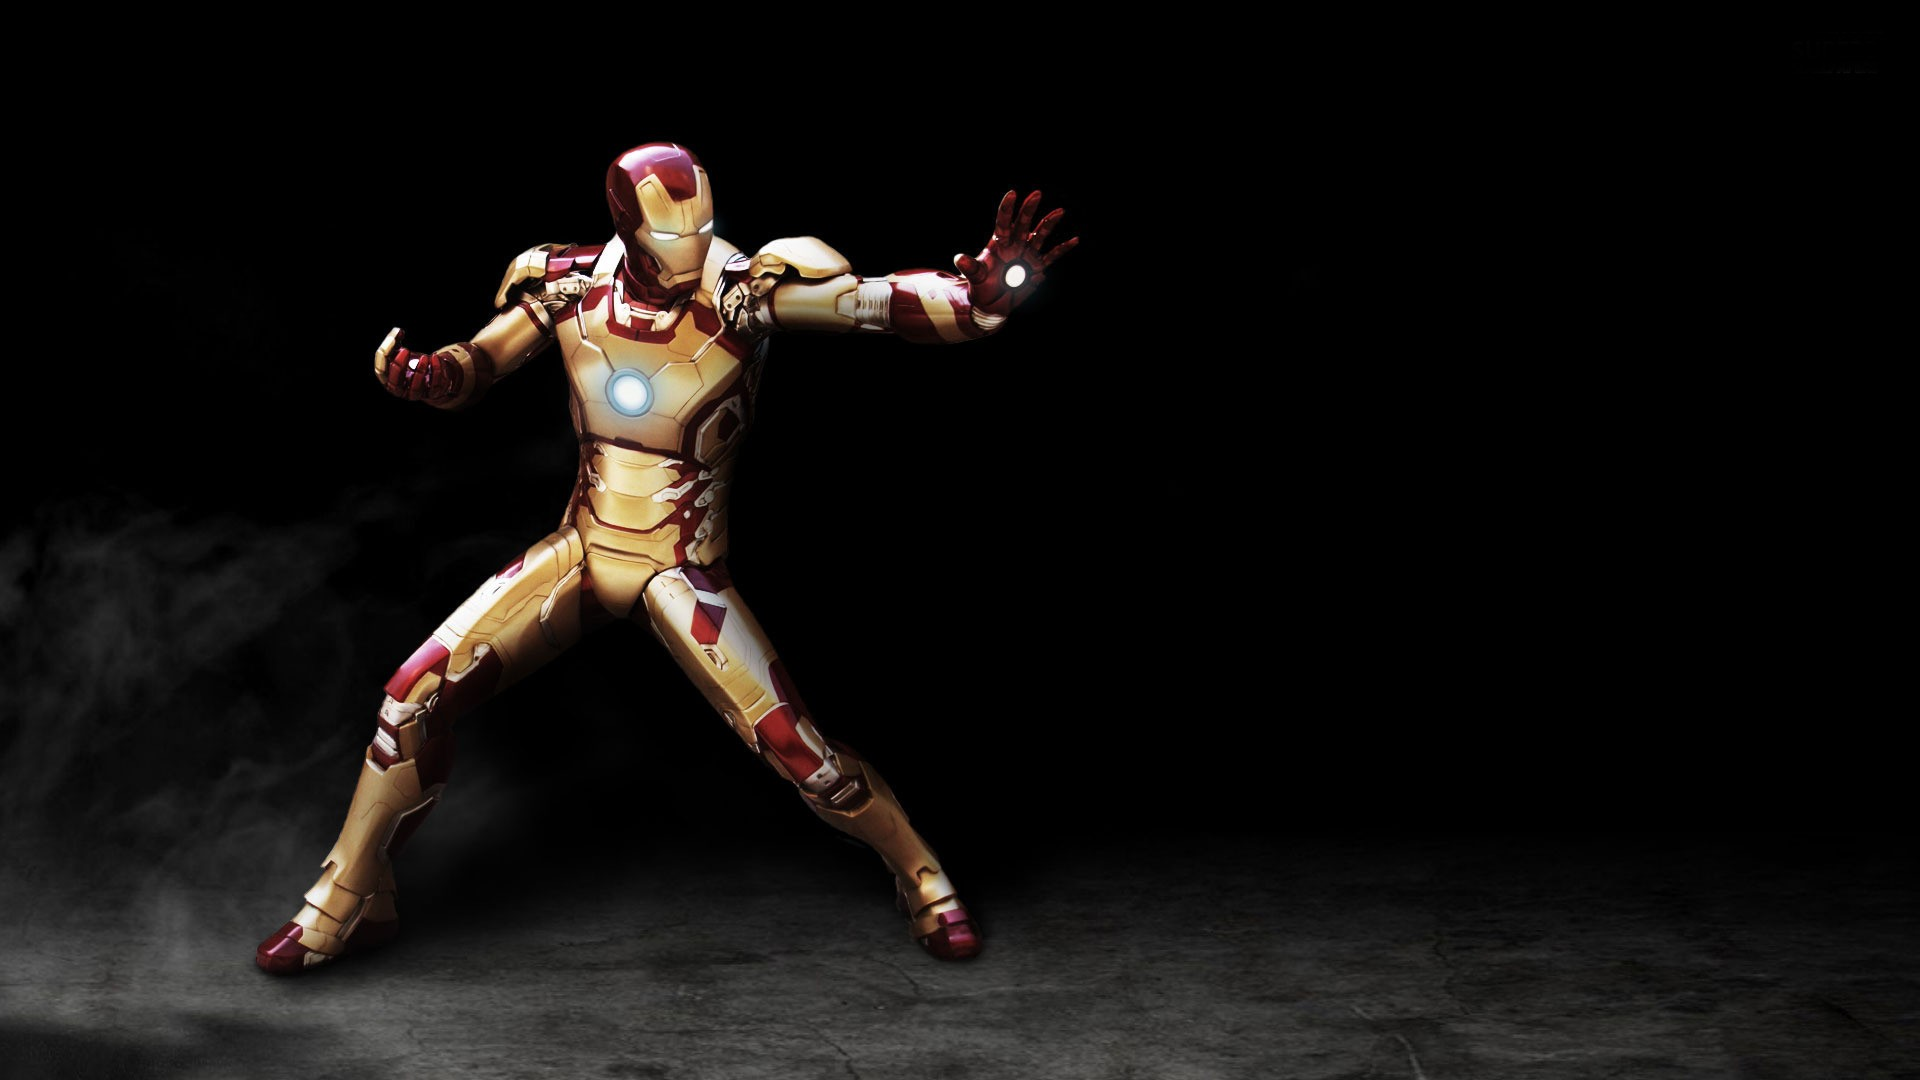 Iron Man Iron Man 3 Mark 42 wallpaper background 1920x1080